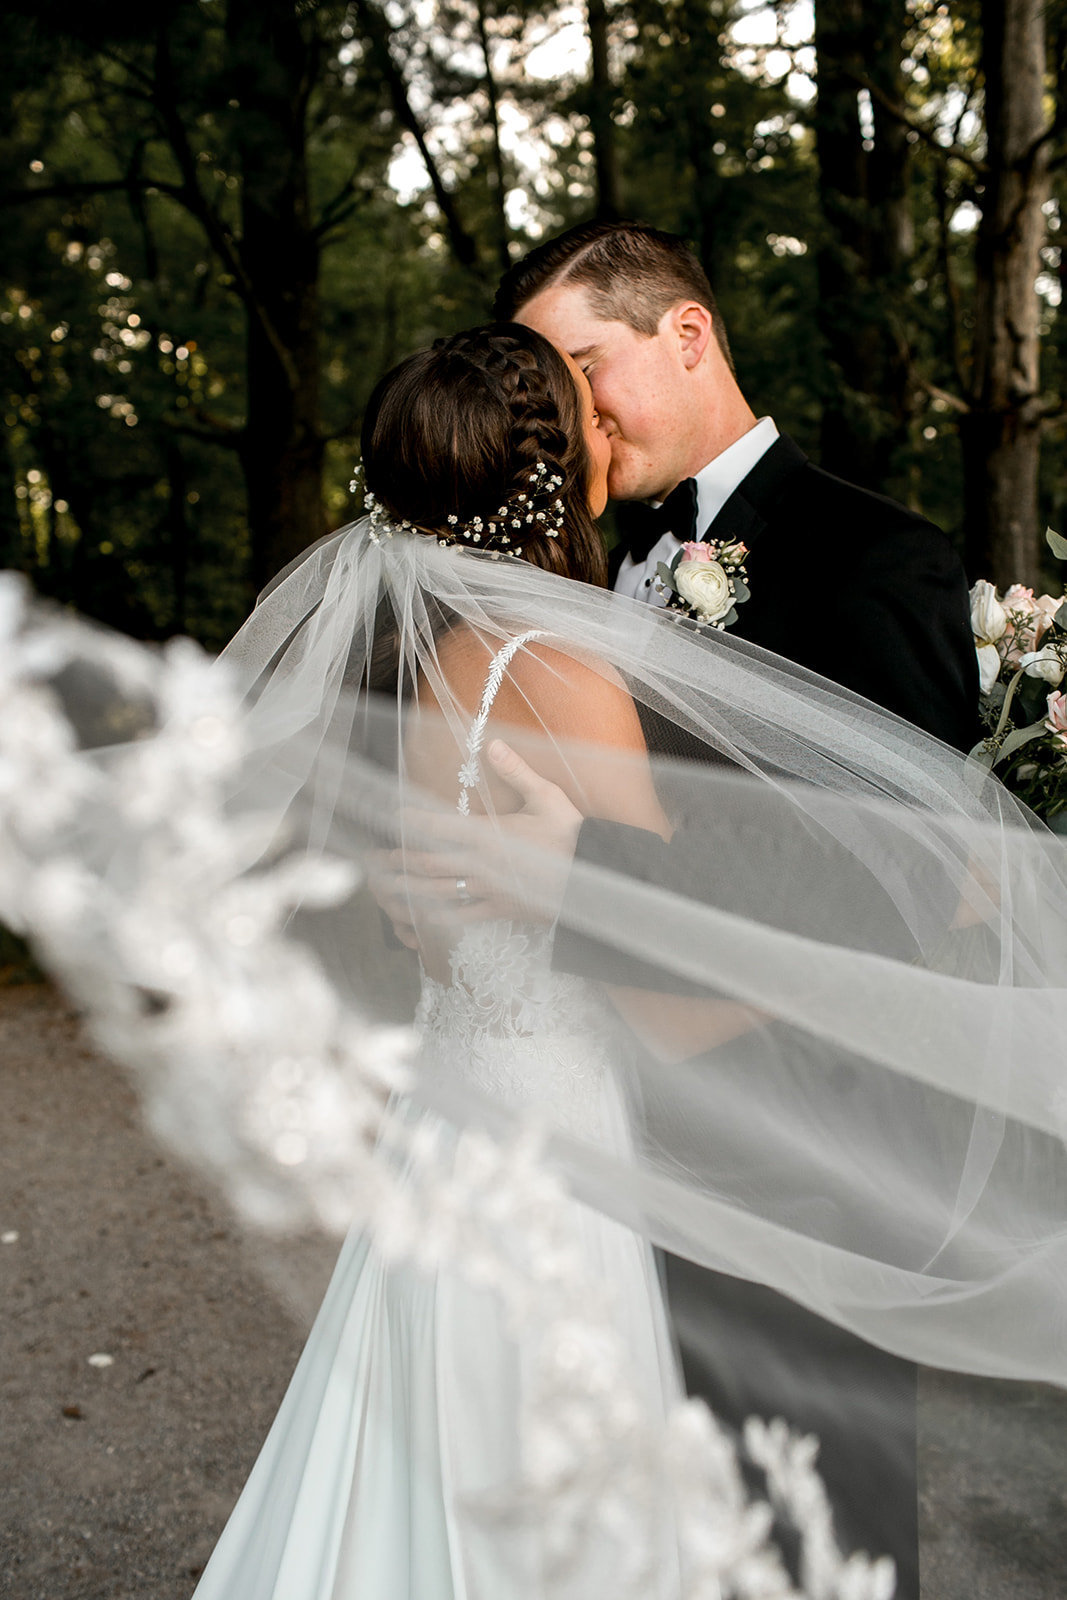 Des Moines Iowa wedding couple veil shot.